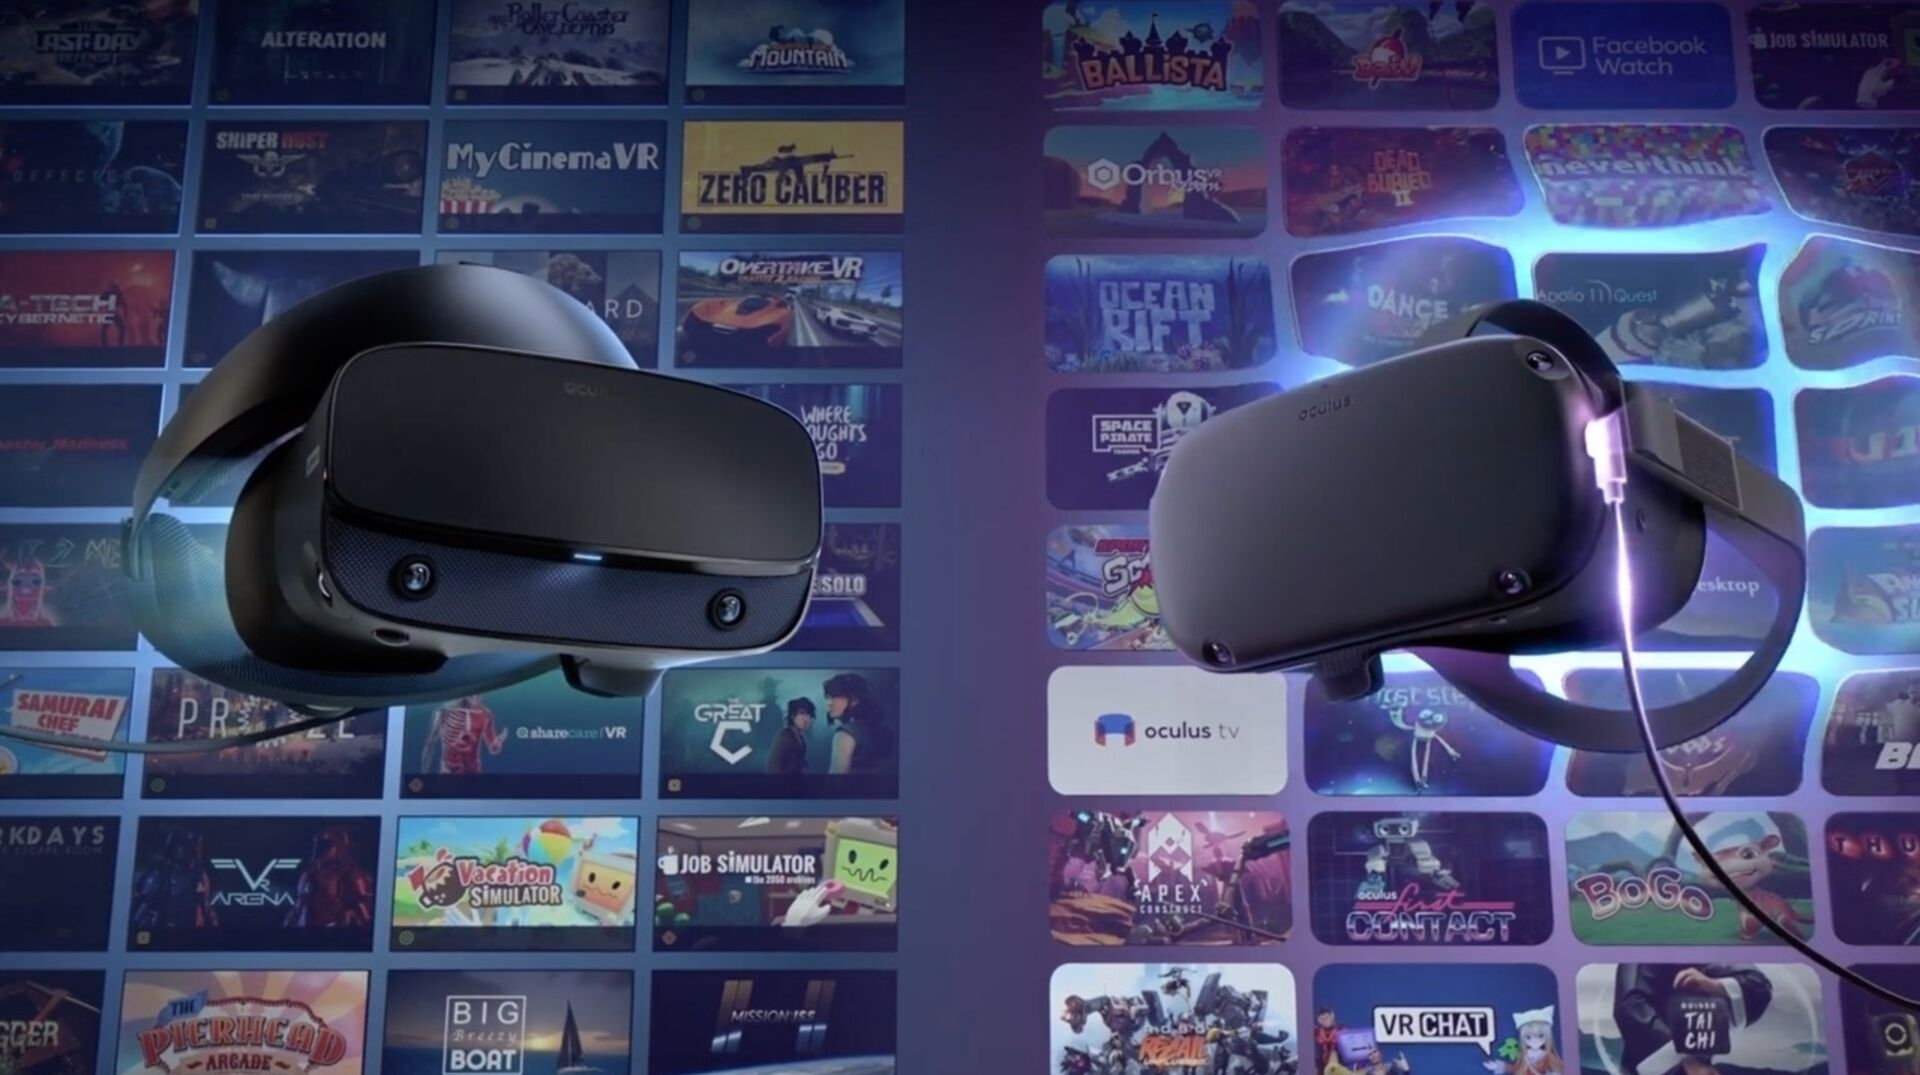 Here's what you'll need to turn your Oculus Quest into a PC